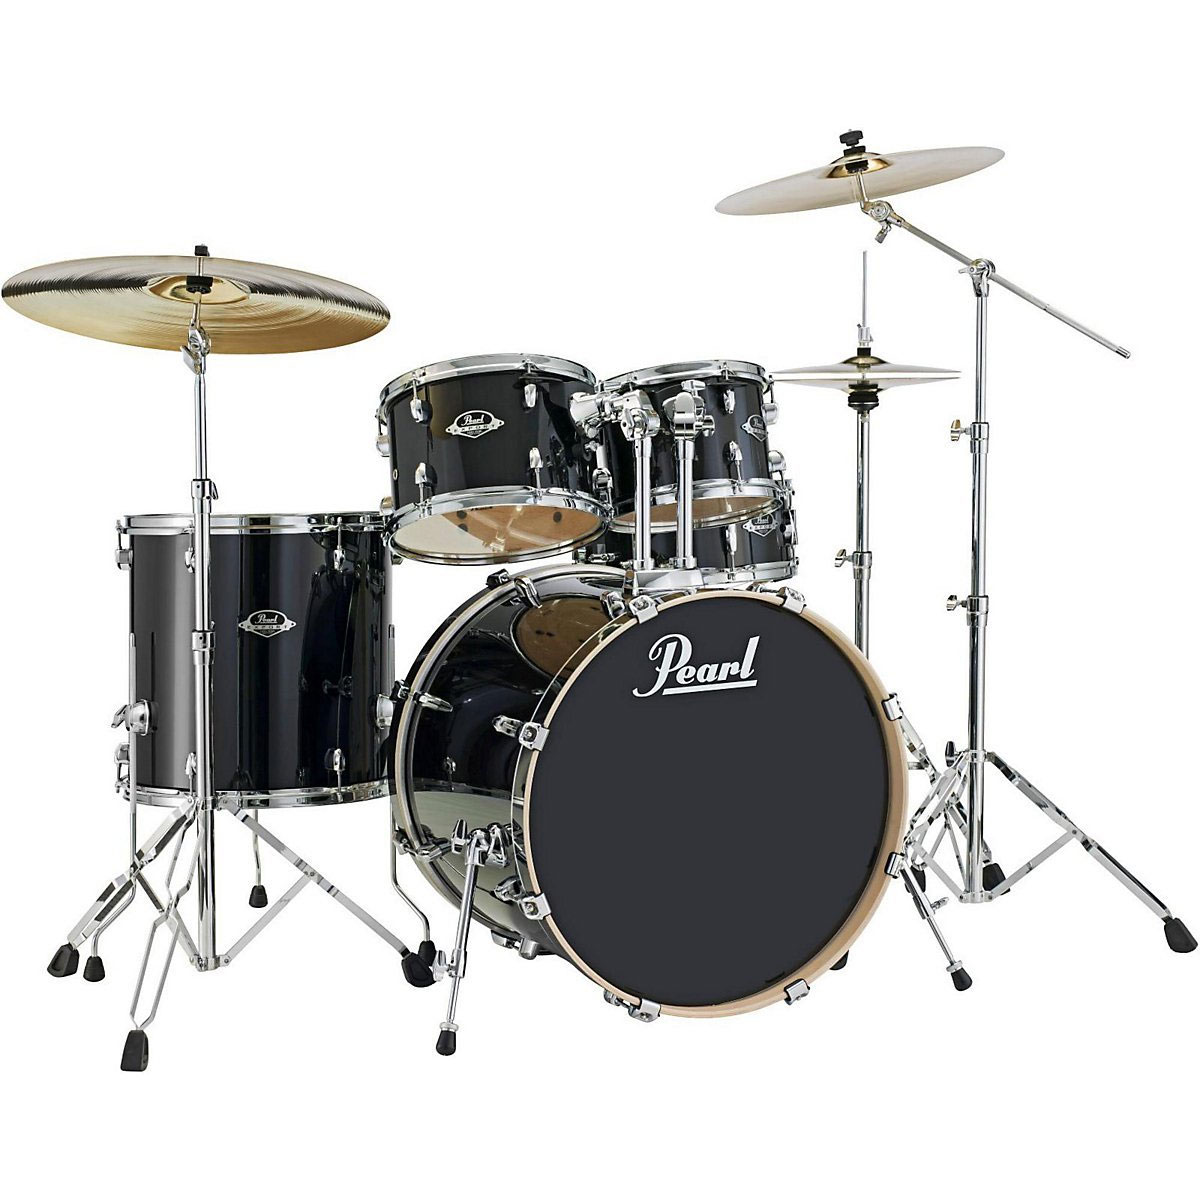 pearl exl export lacquer 5 piece drum set with hardware 20 bass 10 12 14 toms 14 snare. Black Bedroom Furniture Sets. Home Design Ideas